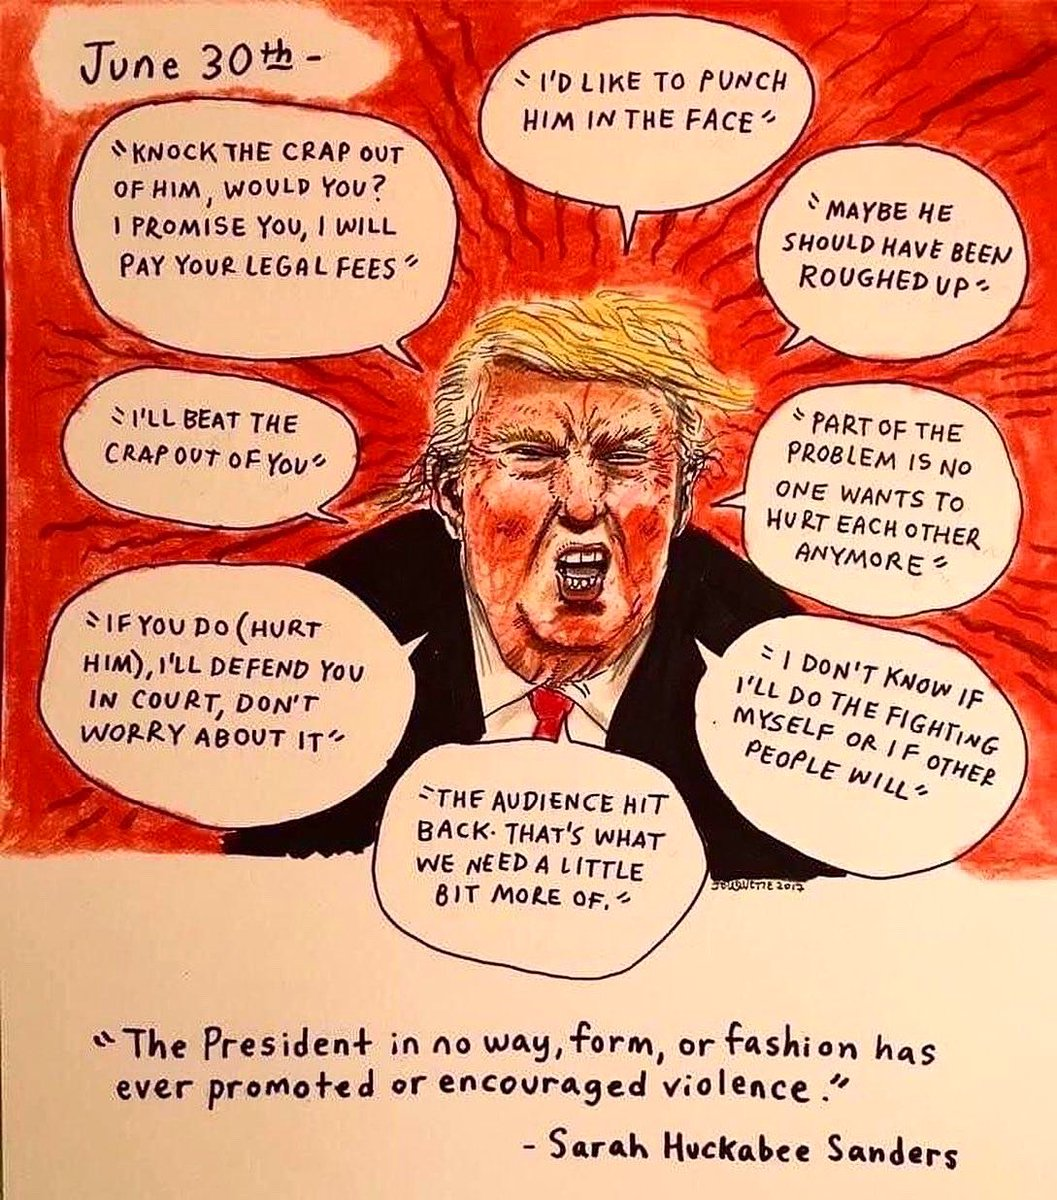 """""""When the looting starts, the shooting starts"""" could easily fit with this drawing from a couple years ago documenting President* Mayonnaise Sculpture's taste for inciting violence, his 2nd favorite pastime next to declaring bankruptcy. #flashbackfriday #dumptrump #thedailydon"""